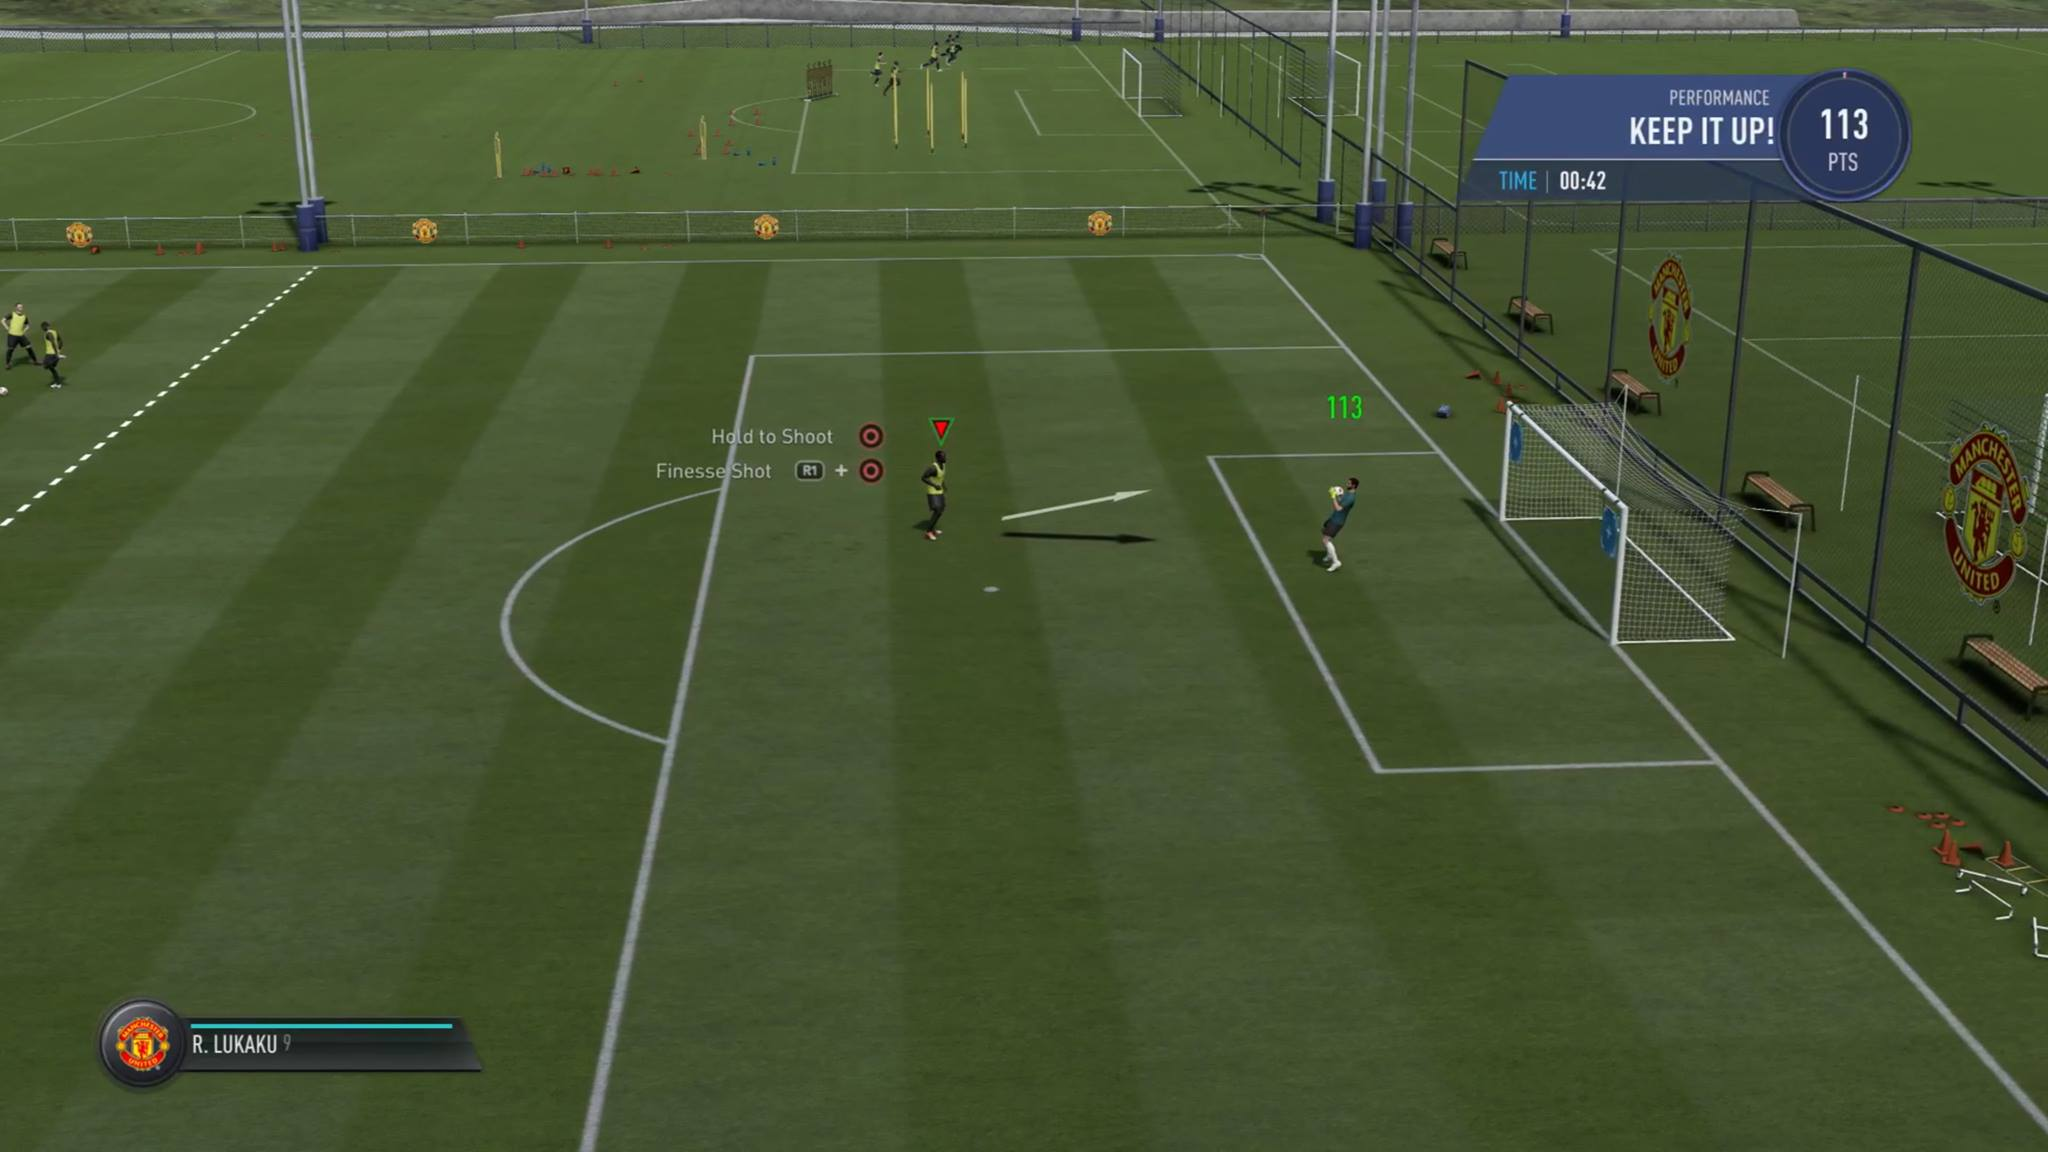 FIFA 19 Timed Finishing: How To Use Timed Finishing To Score